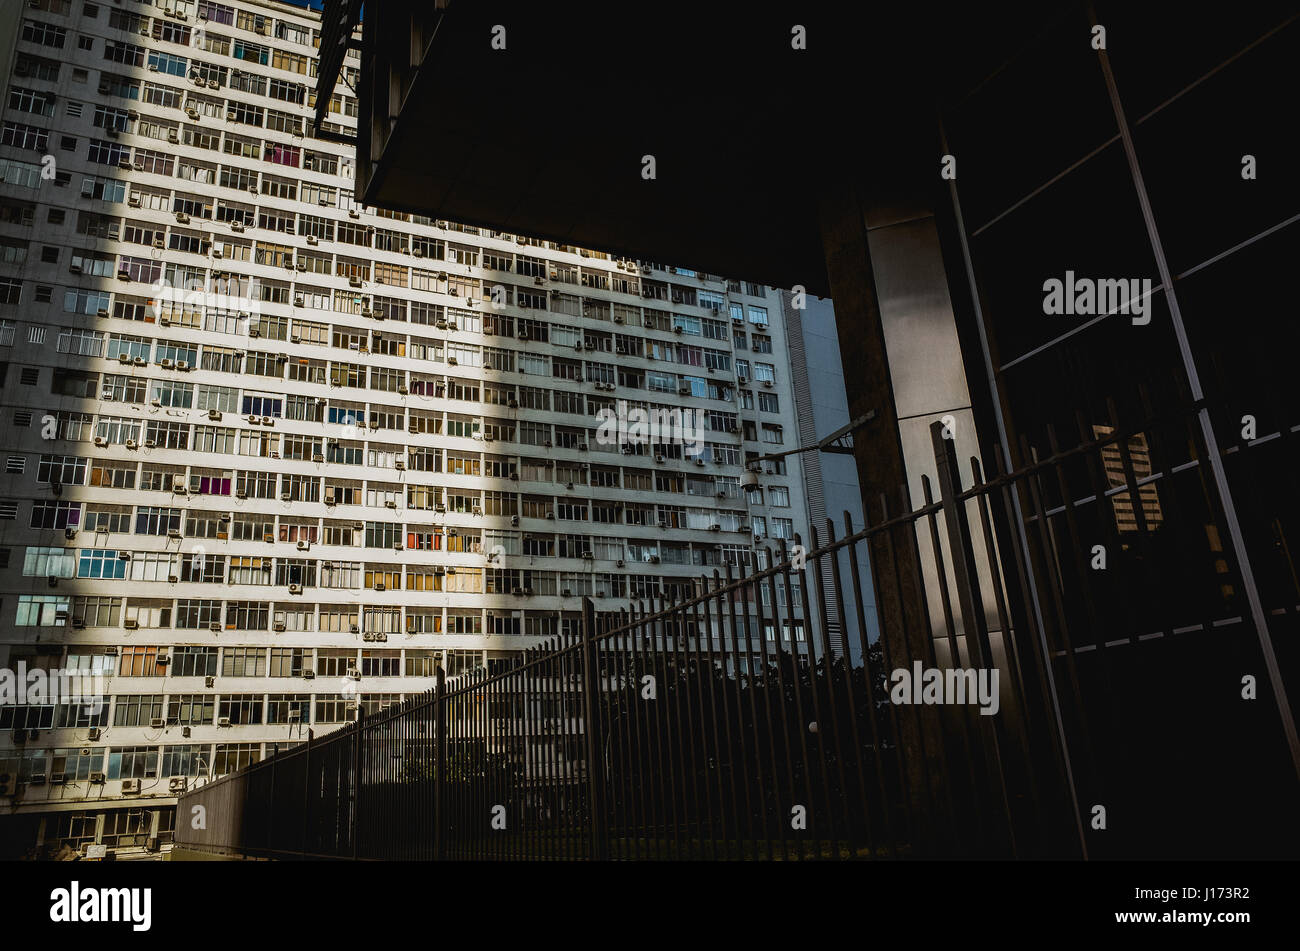 Overpopulated high rise building next to building with high security measures in Downtown Rio de Janeiro, Brazil - Stock Image